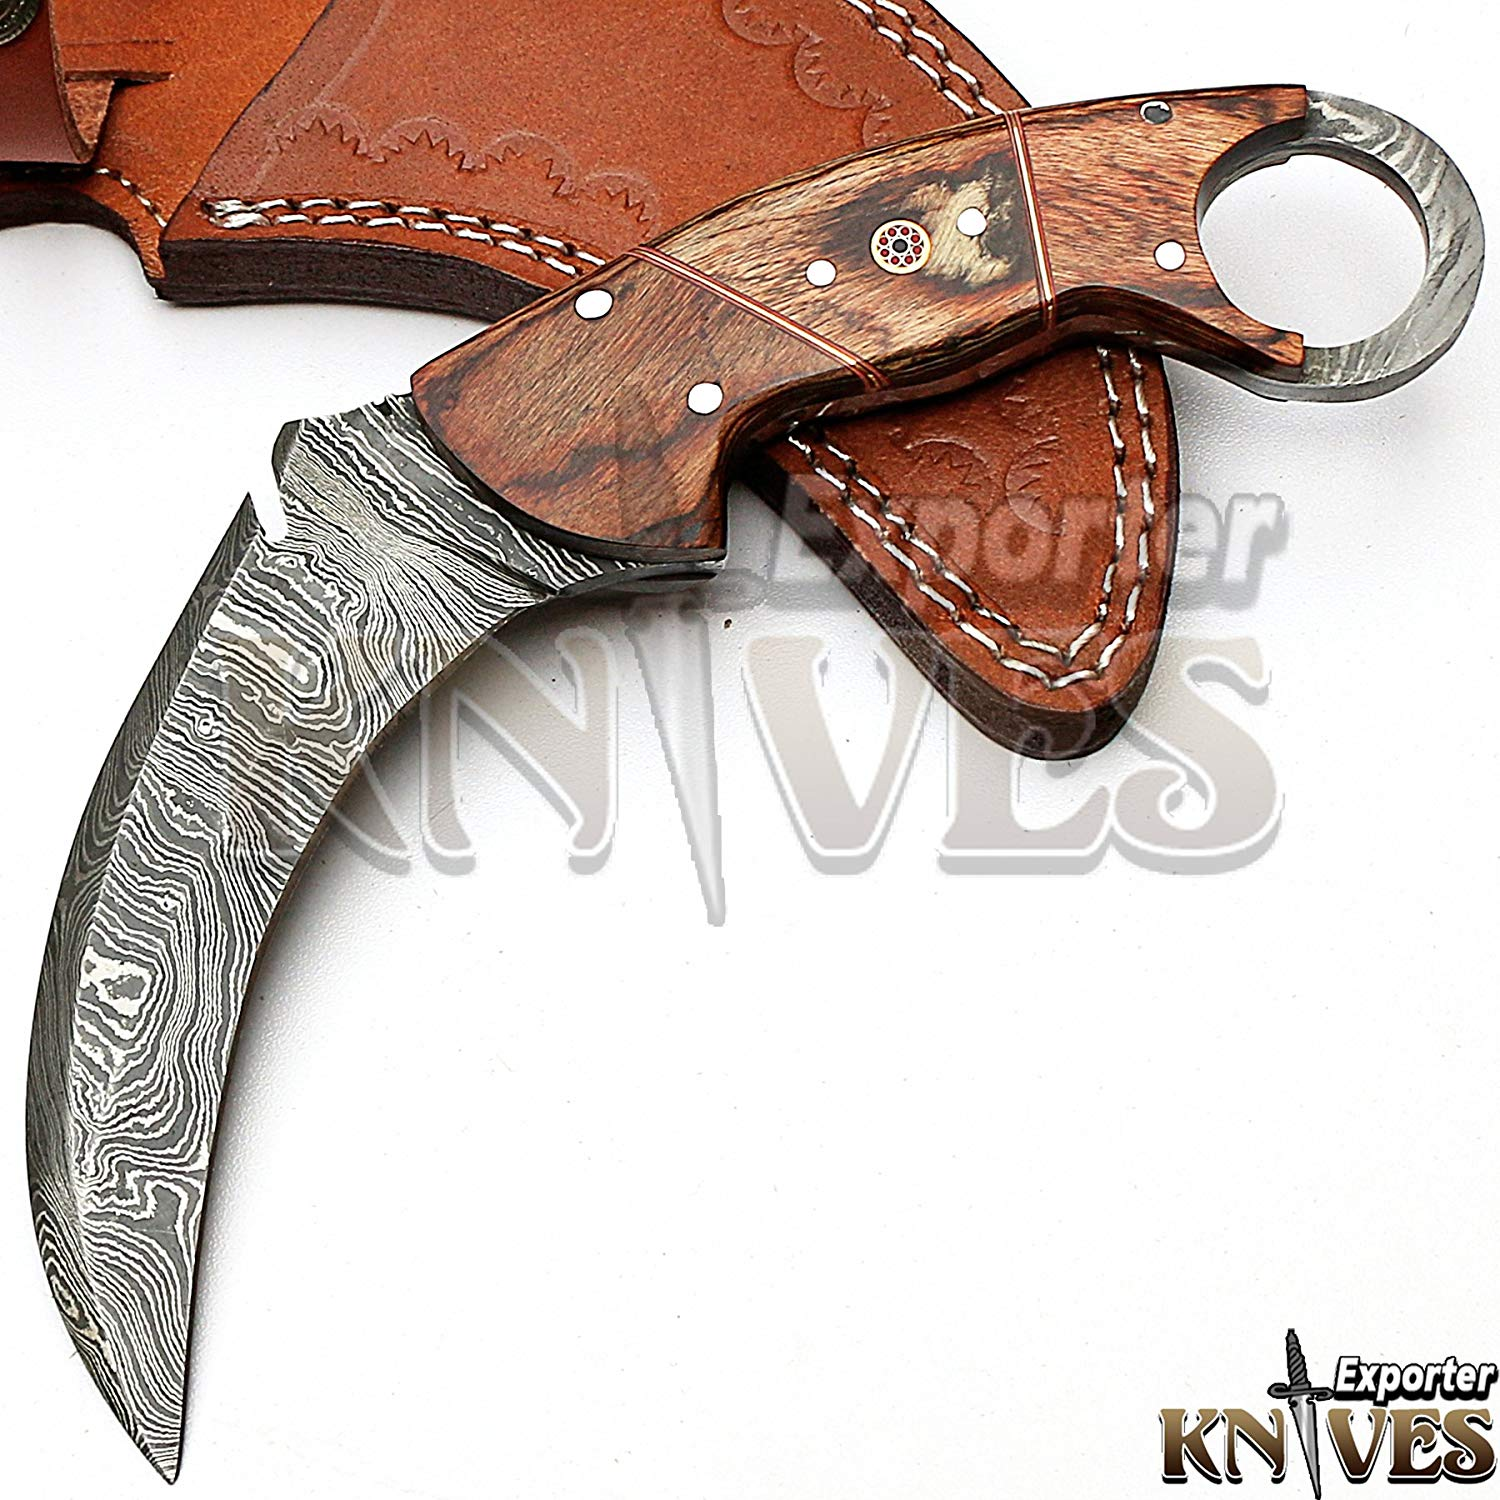 Custom Hand Made Damascus Steel Survival Karambit Knife KE-321 / Wooden Handle